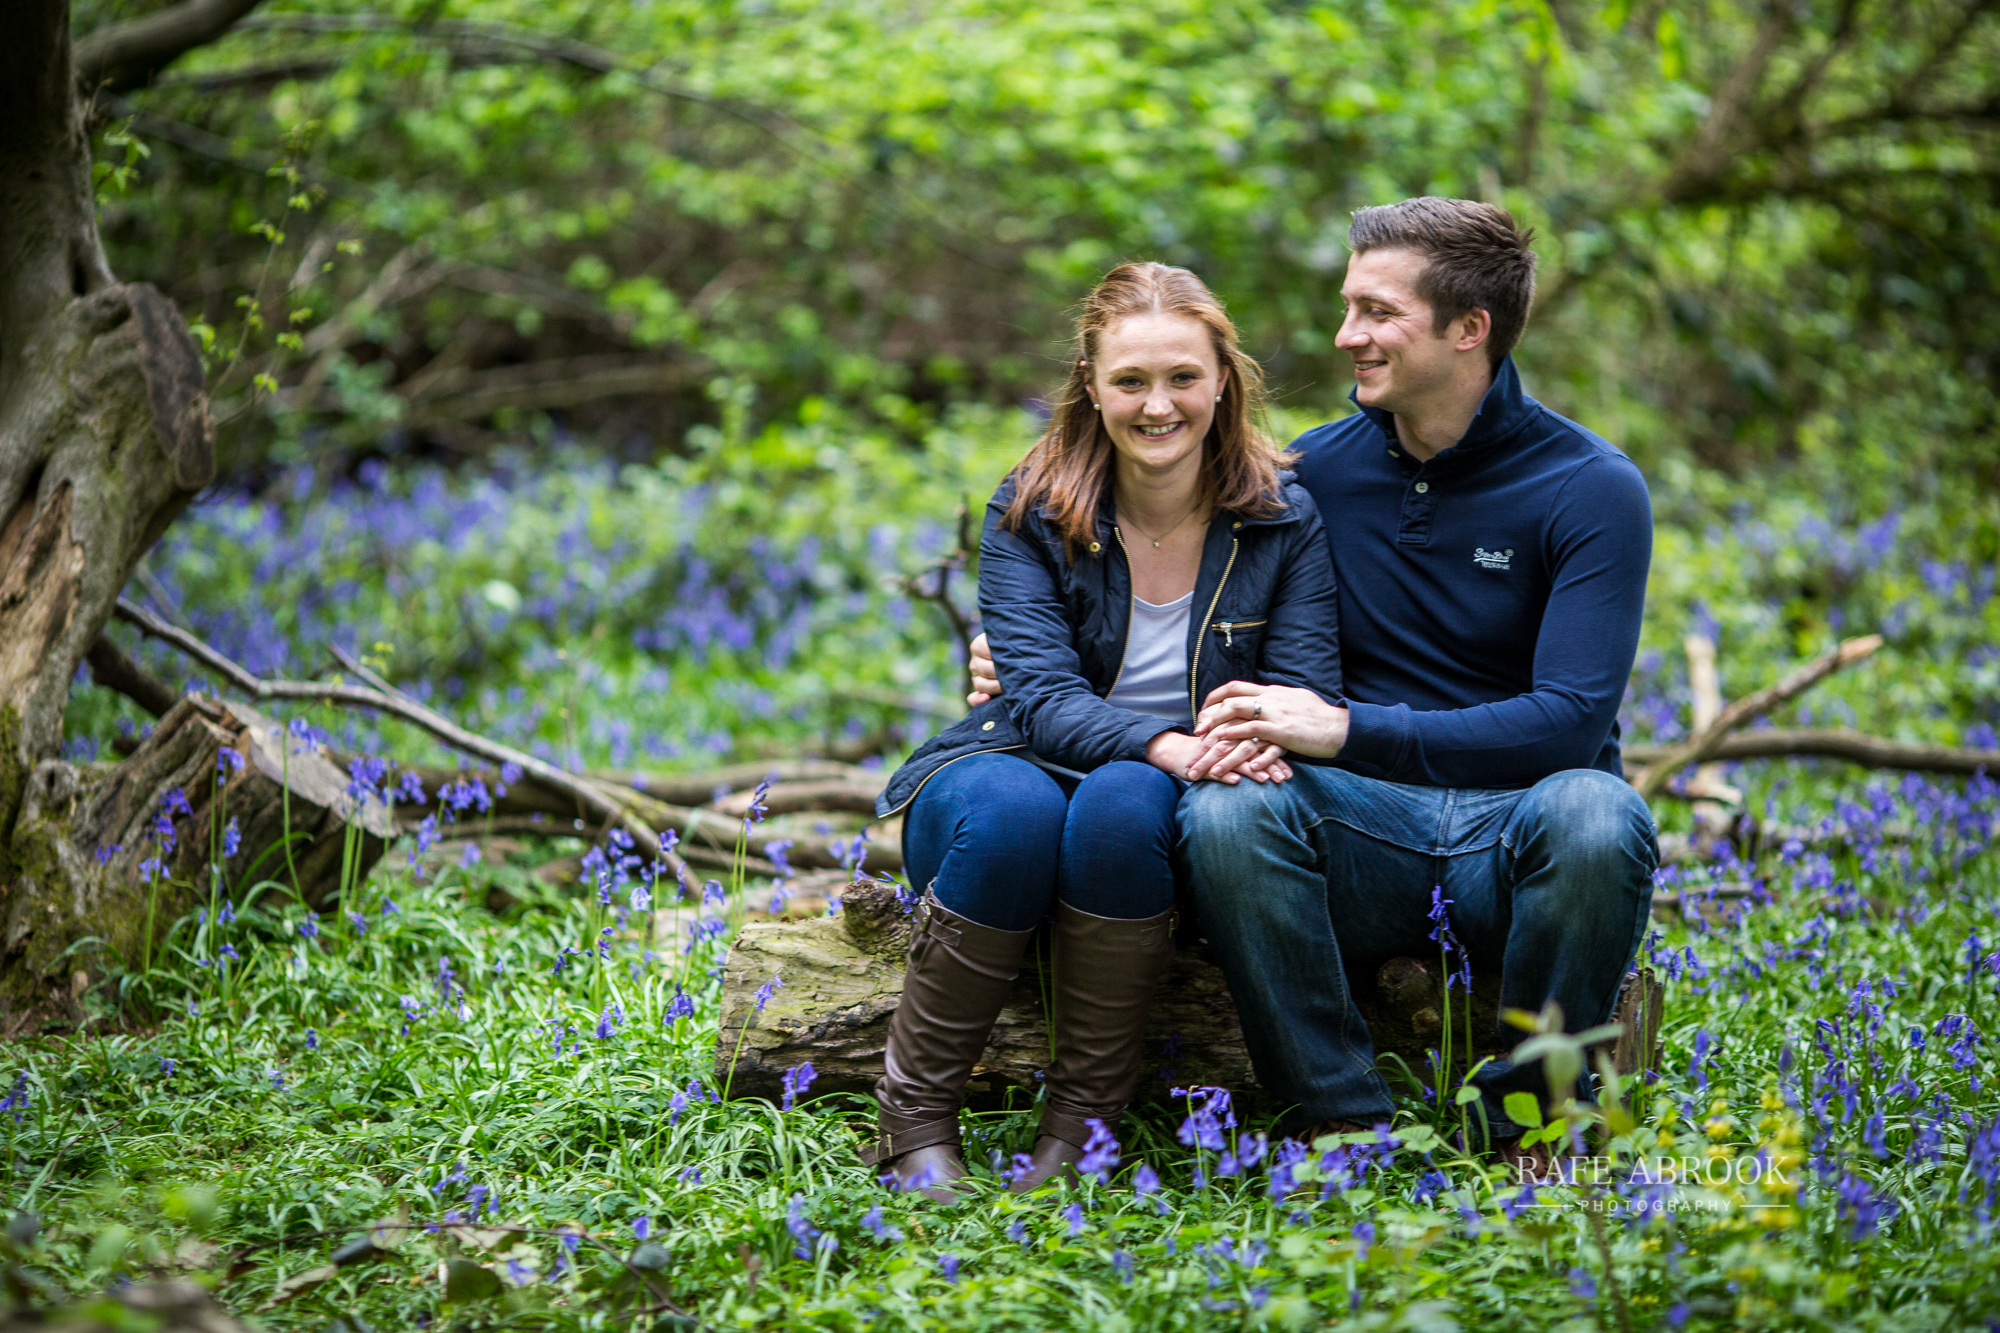 george & amelia heartwood forest st albans hertfordshire engagement shoot-1038.jpg